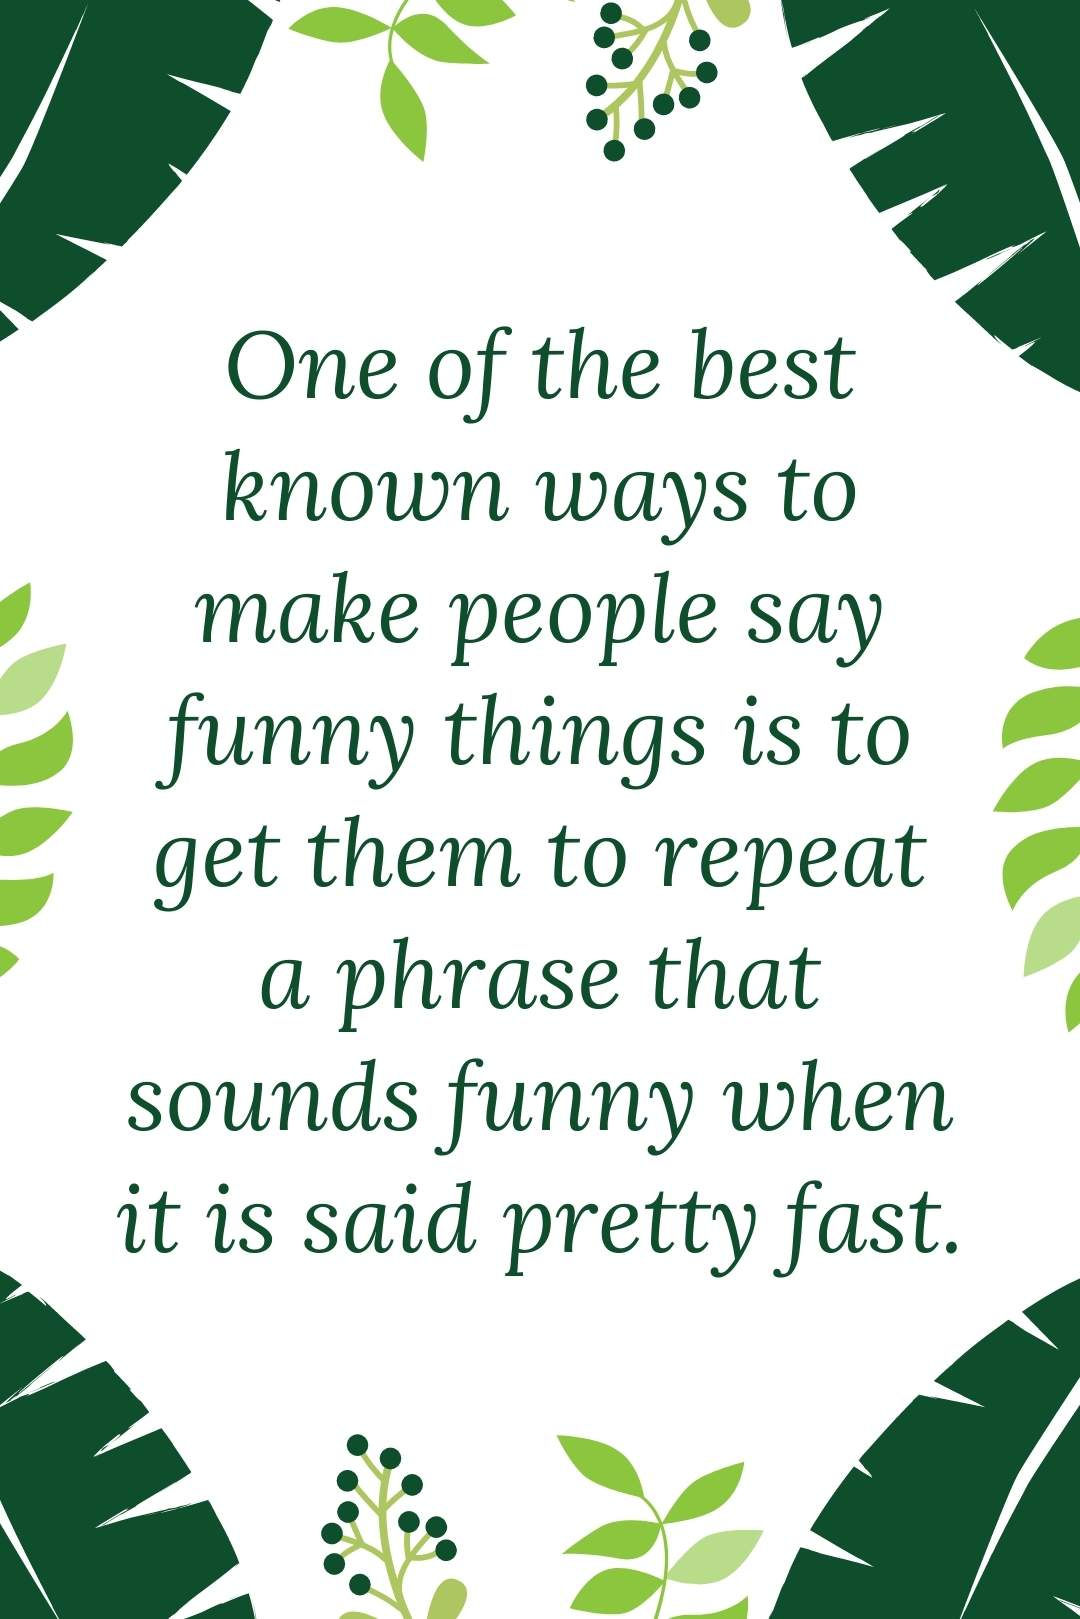 One  of the best known ways to make people say funny things is to get them to repeat a phrase that sounds funny when it is said pretty fast.